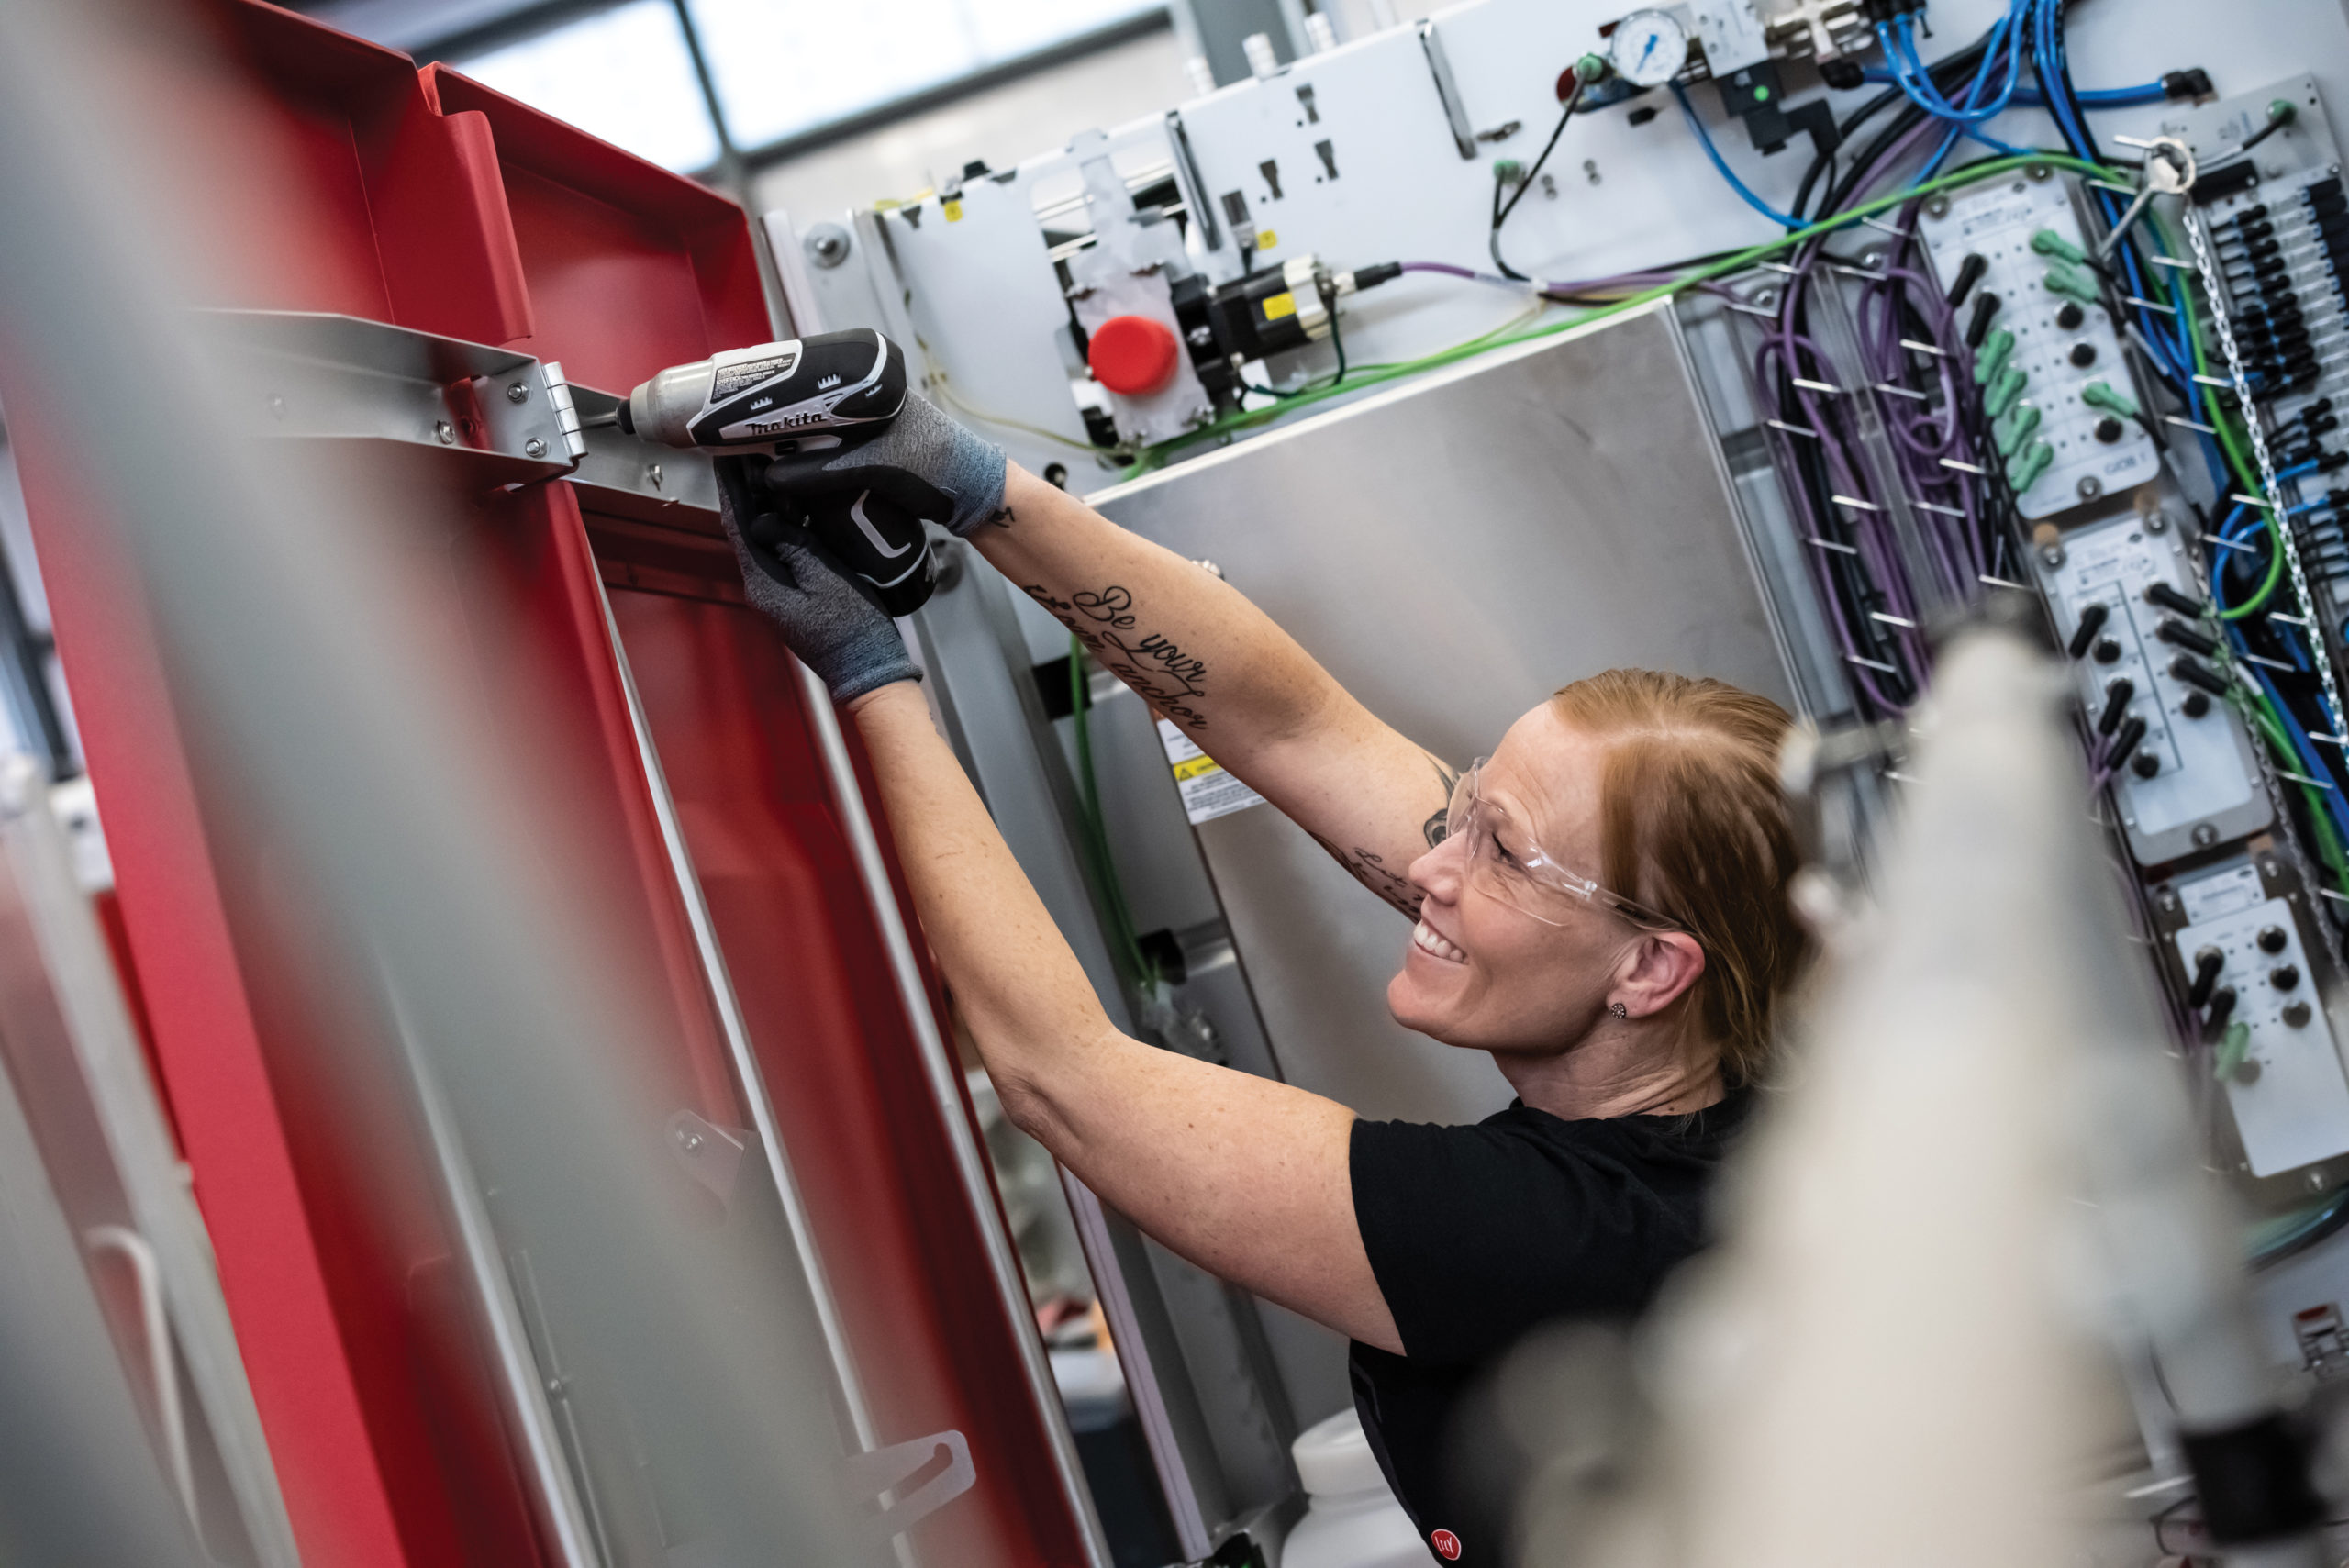 Lely leader sees tremendous growth potential for robotic dairy solutions